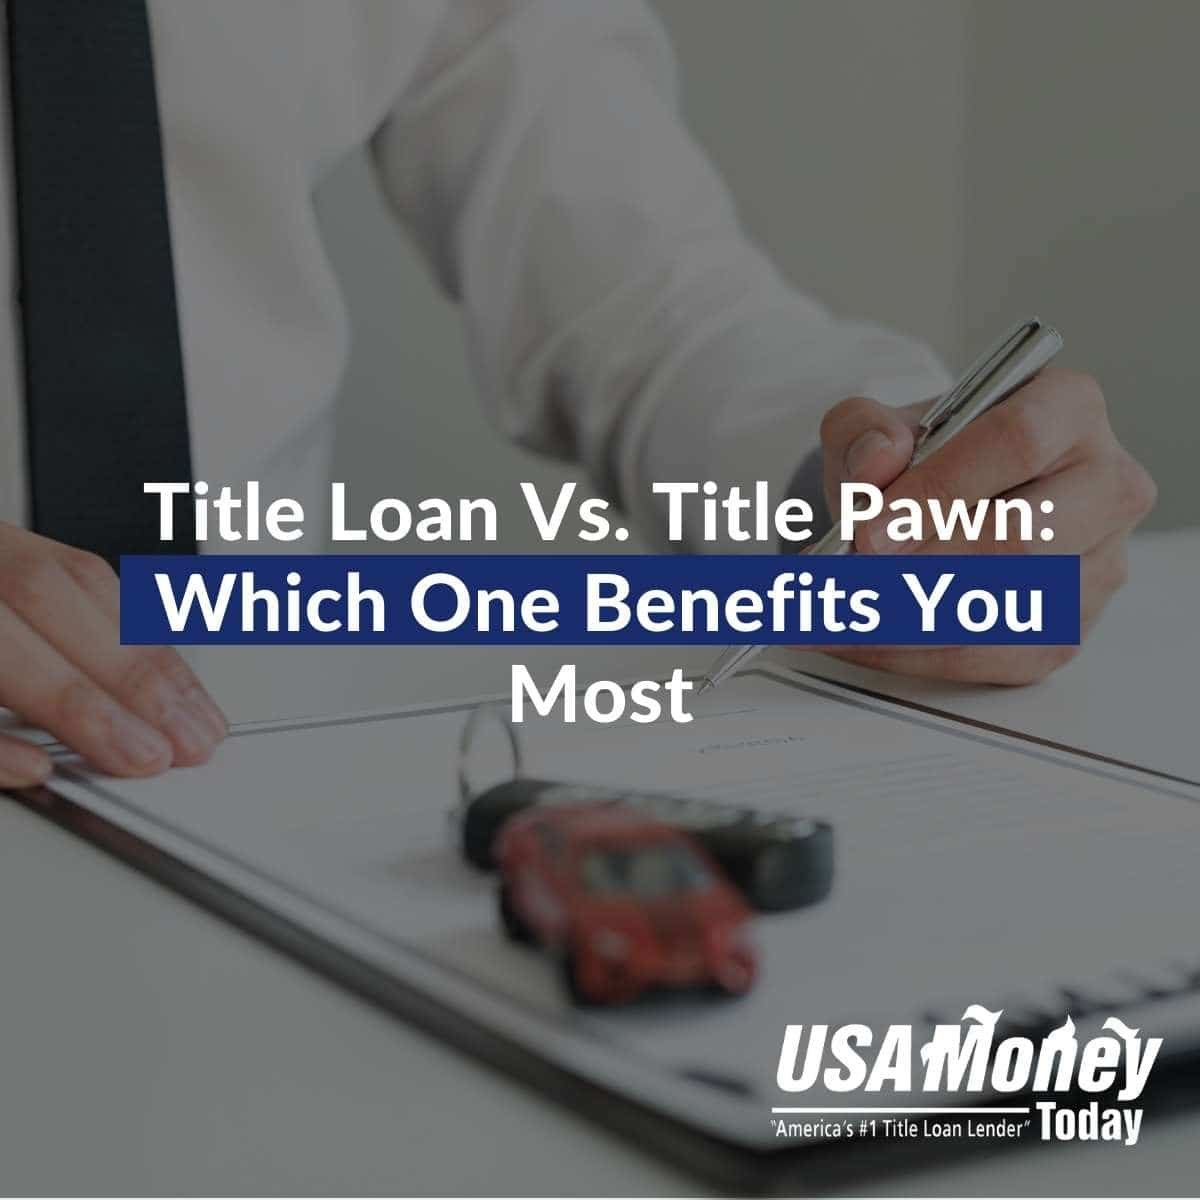 Title Loan Vs. Title Pawn: Which One Benefits You Most